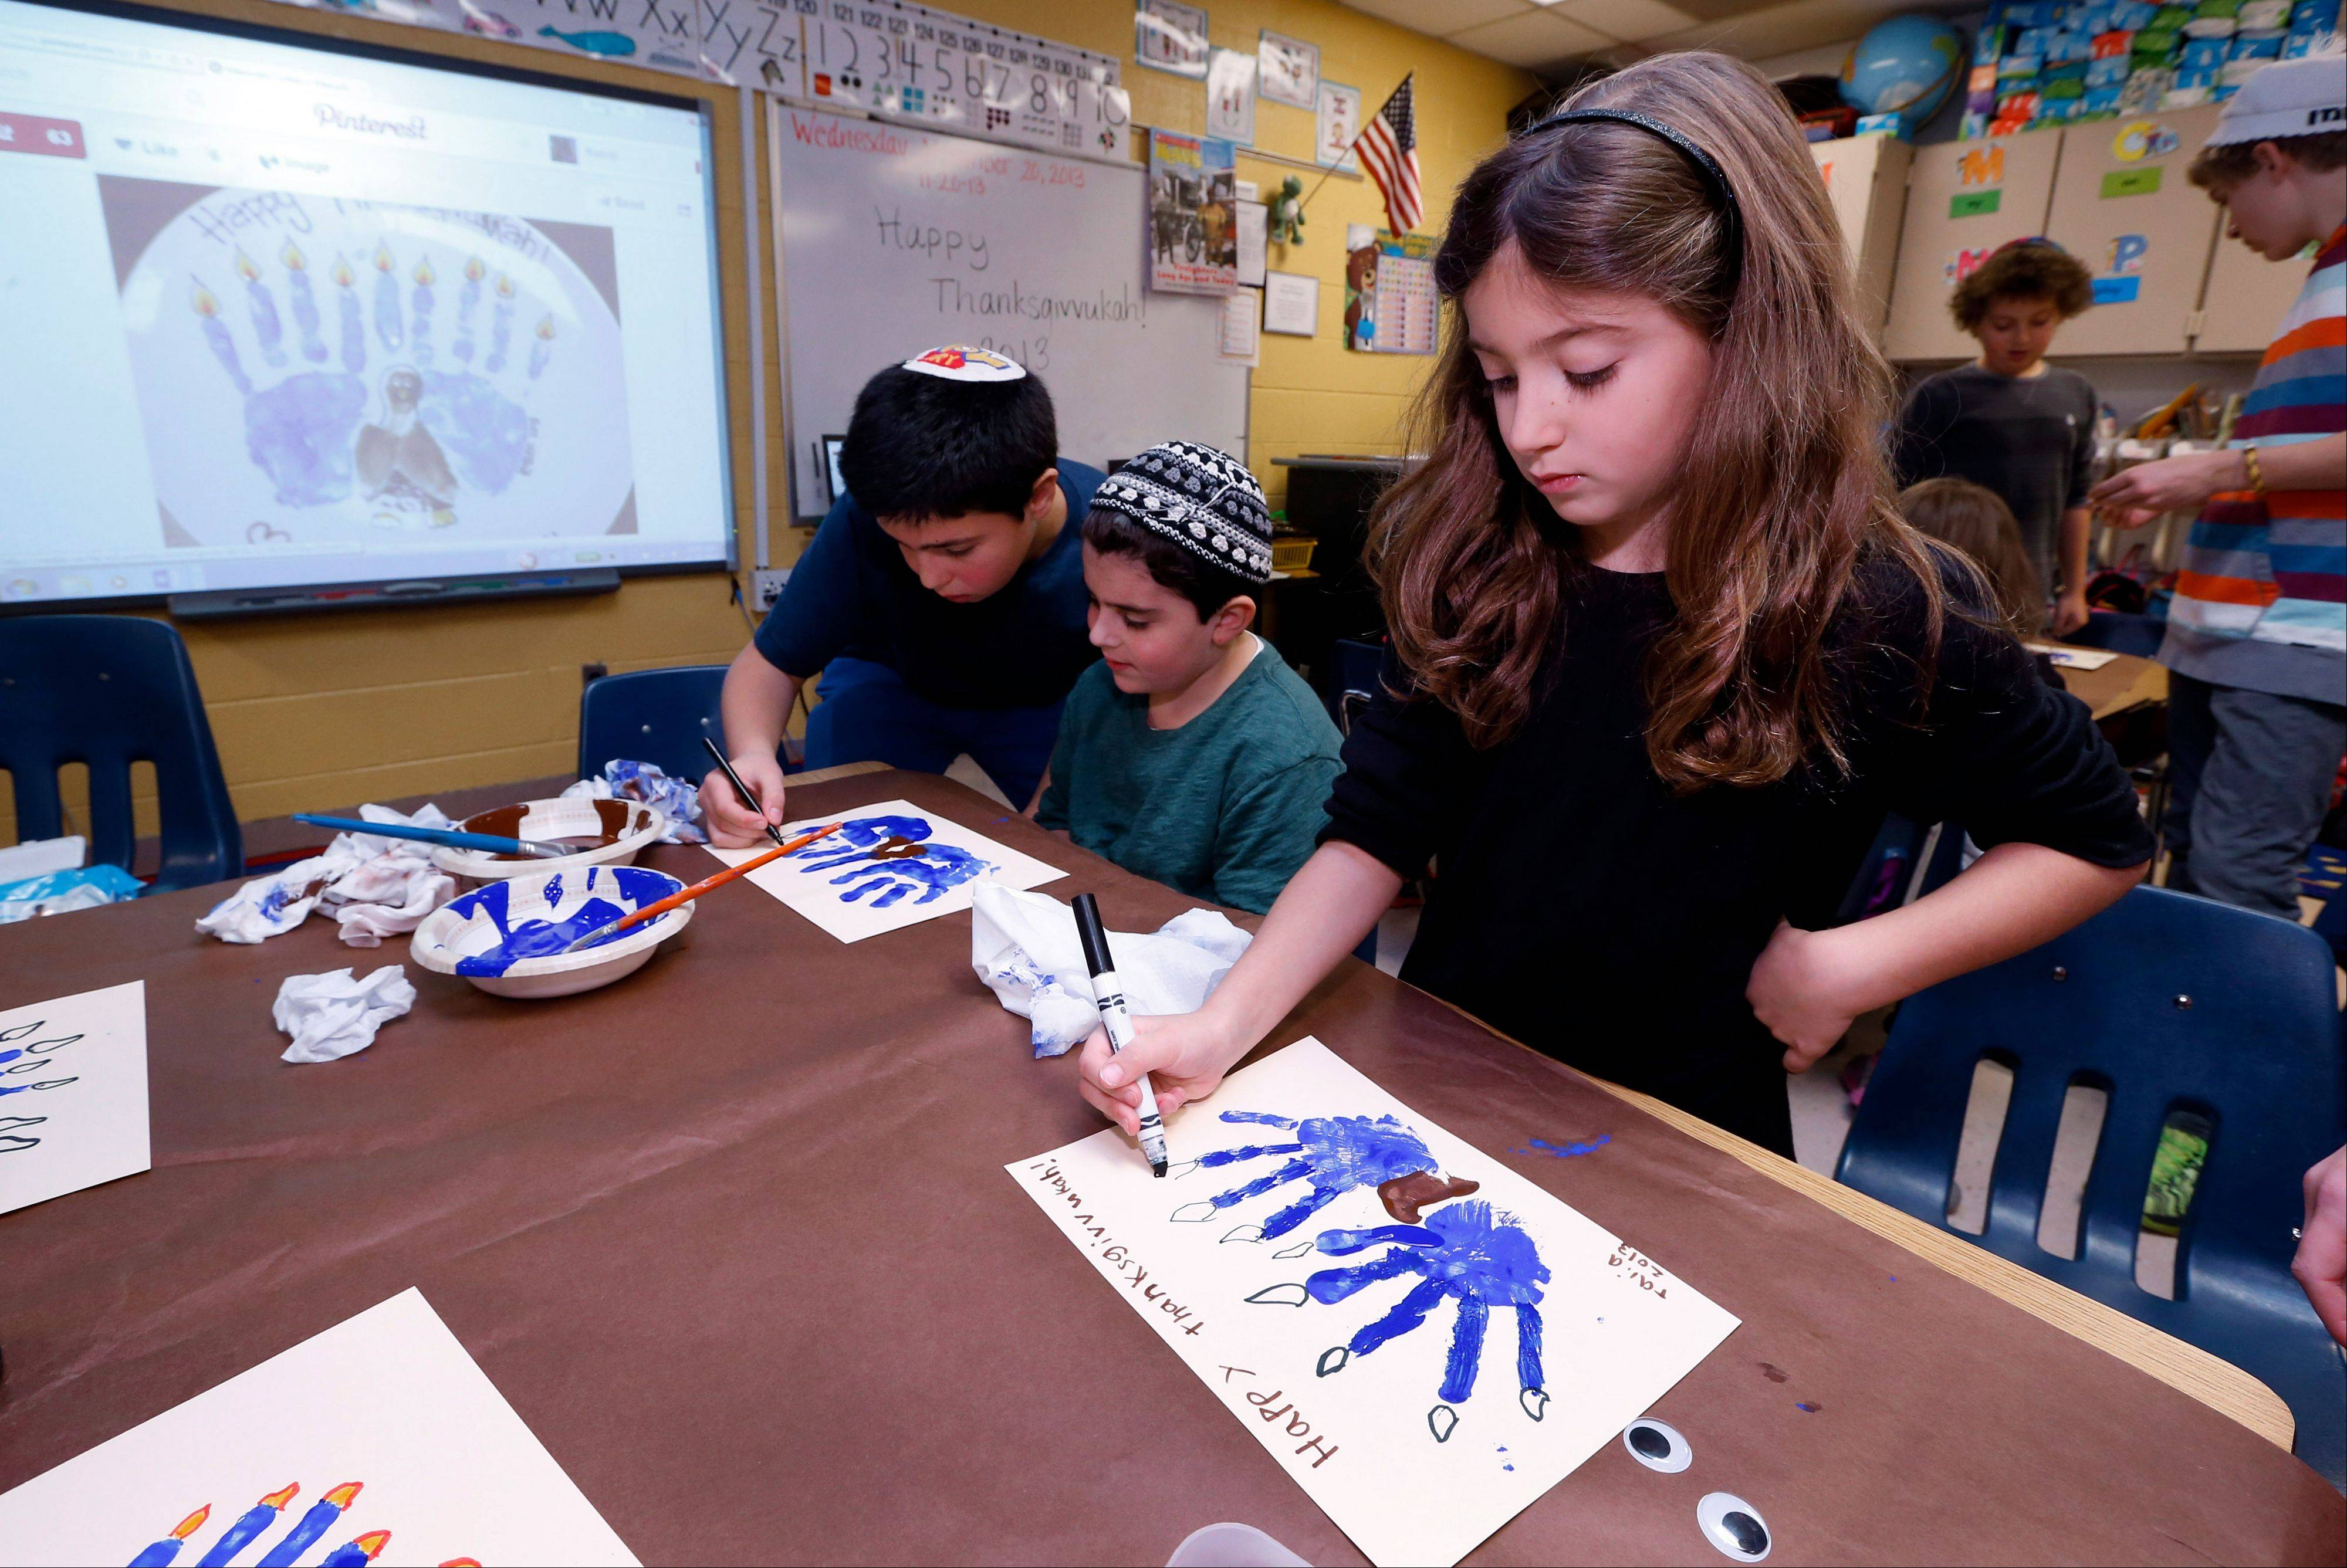 Second-grader Talia Begres, 7, works on creating a menurkey, a paper-and-paint mashup of a menorah and turkey at Hillel Day School in Farmington Hills, Mich. The recent class project reflects one way for Jews in the United States to deal with a rare quirk of the calendar that overlaps Thanksgiving with the start of Hanukkah. The last time it happened was 1888 and the next time is 79,043 years from now -- by one estimate that �s widely repeated in Jewish circles.